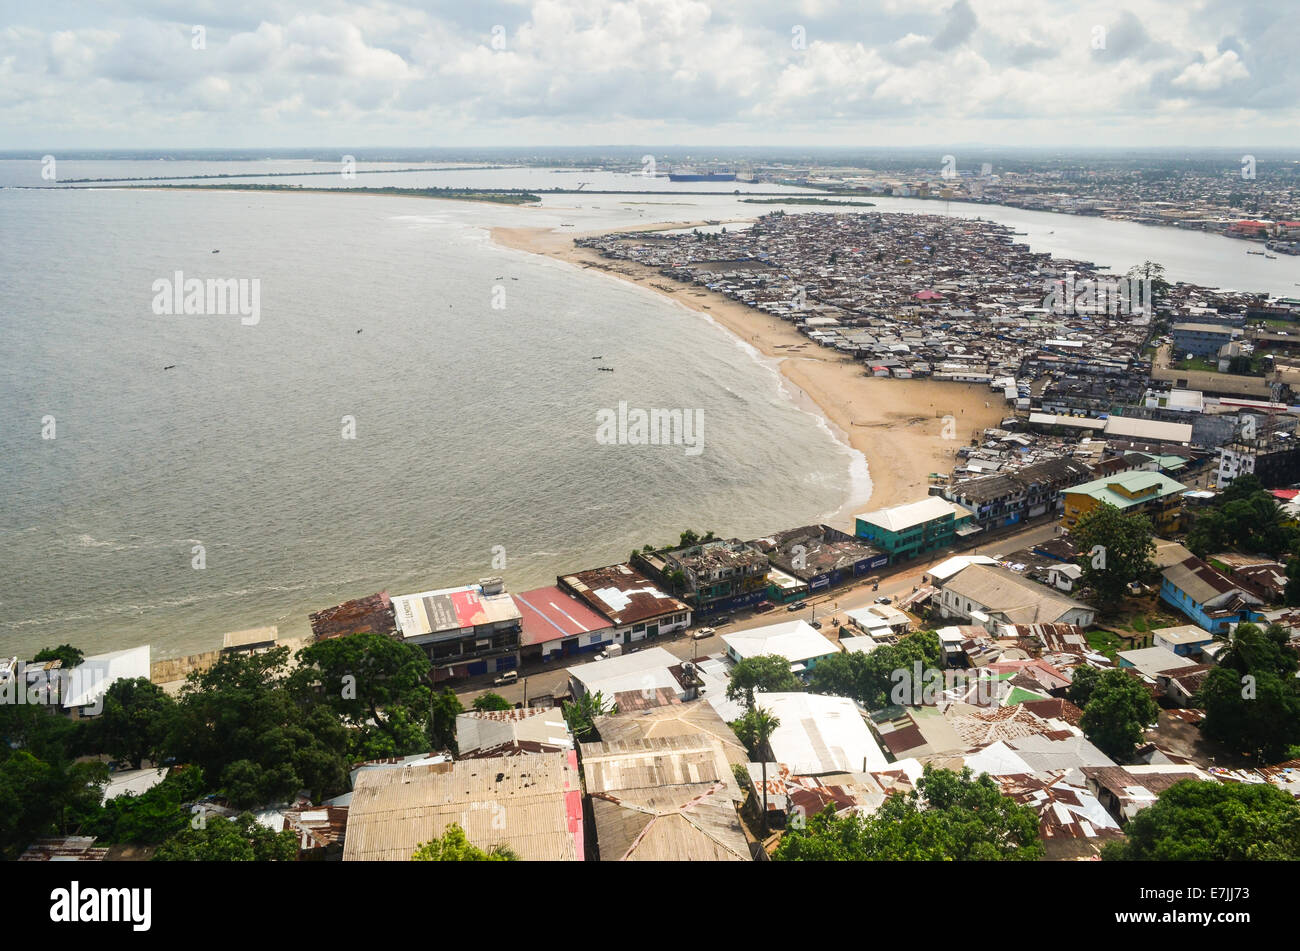 Aerial view of West Point, the poorest suburb of the city of Monrovia, Liberia, taken from the top of the ruins - Stock Image